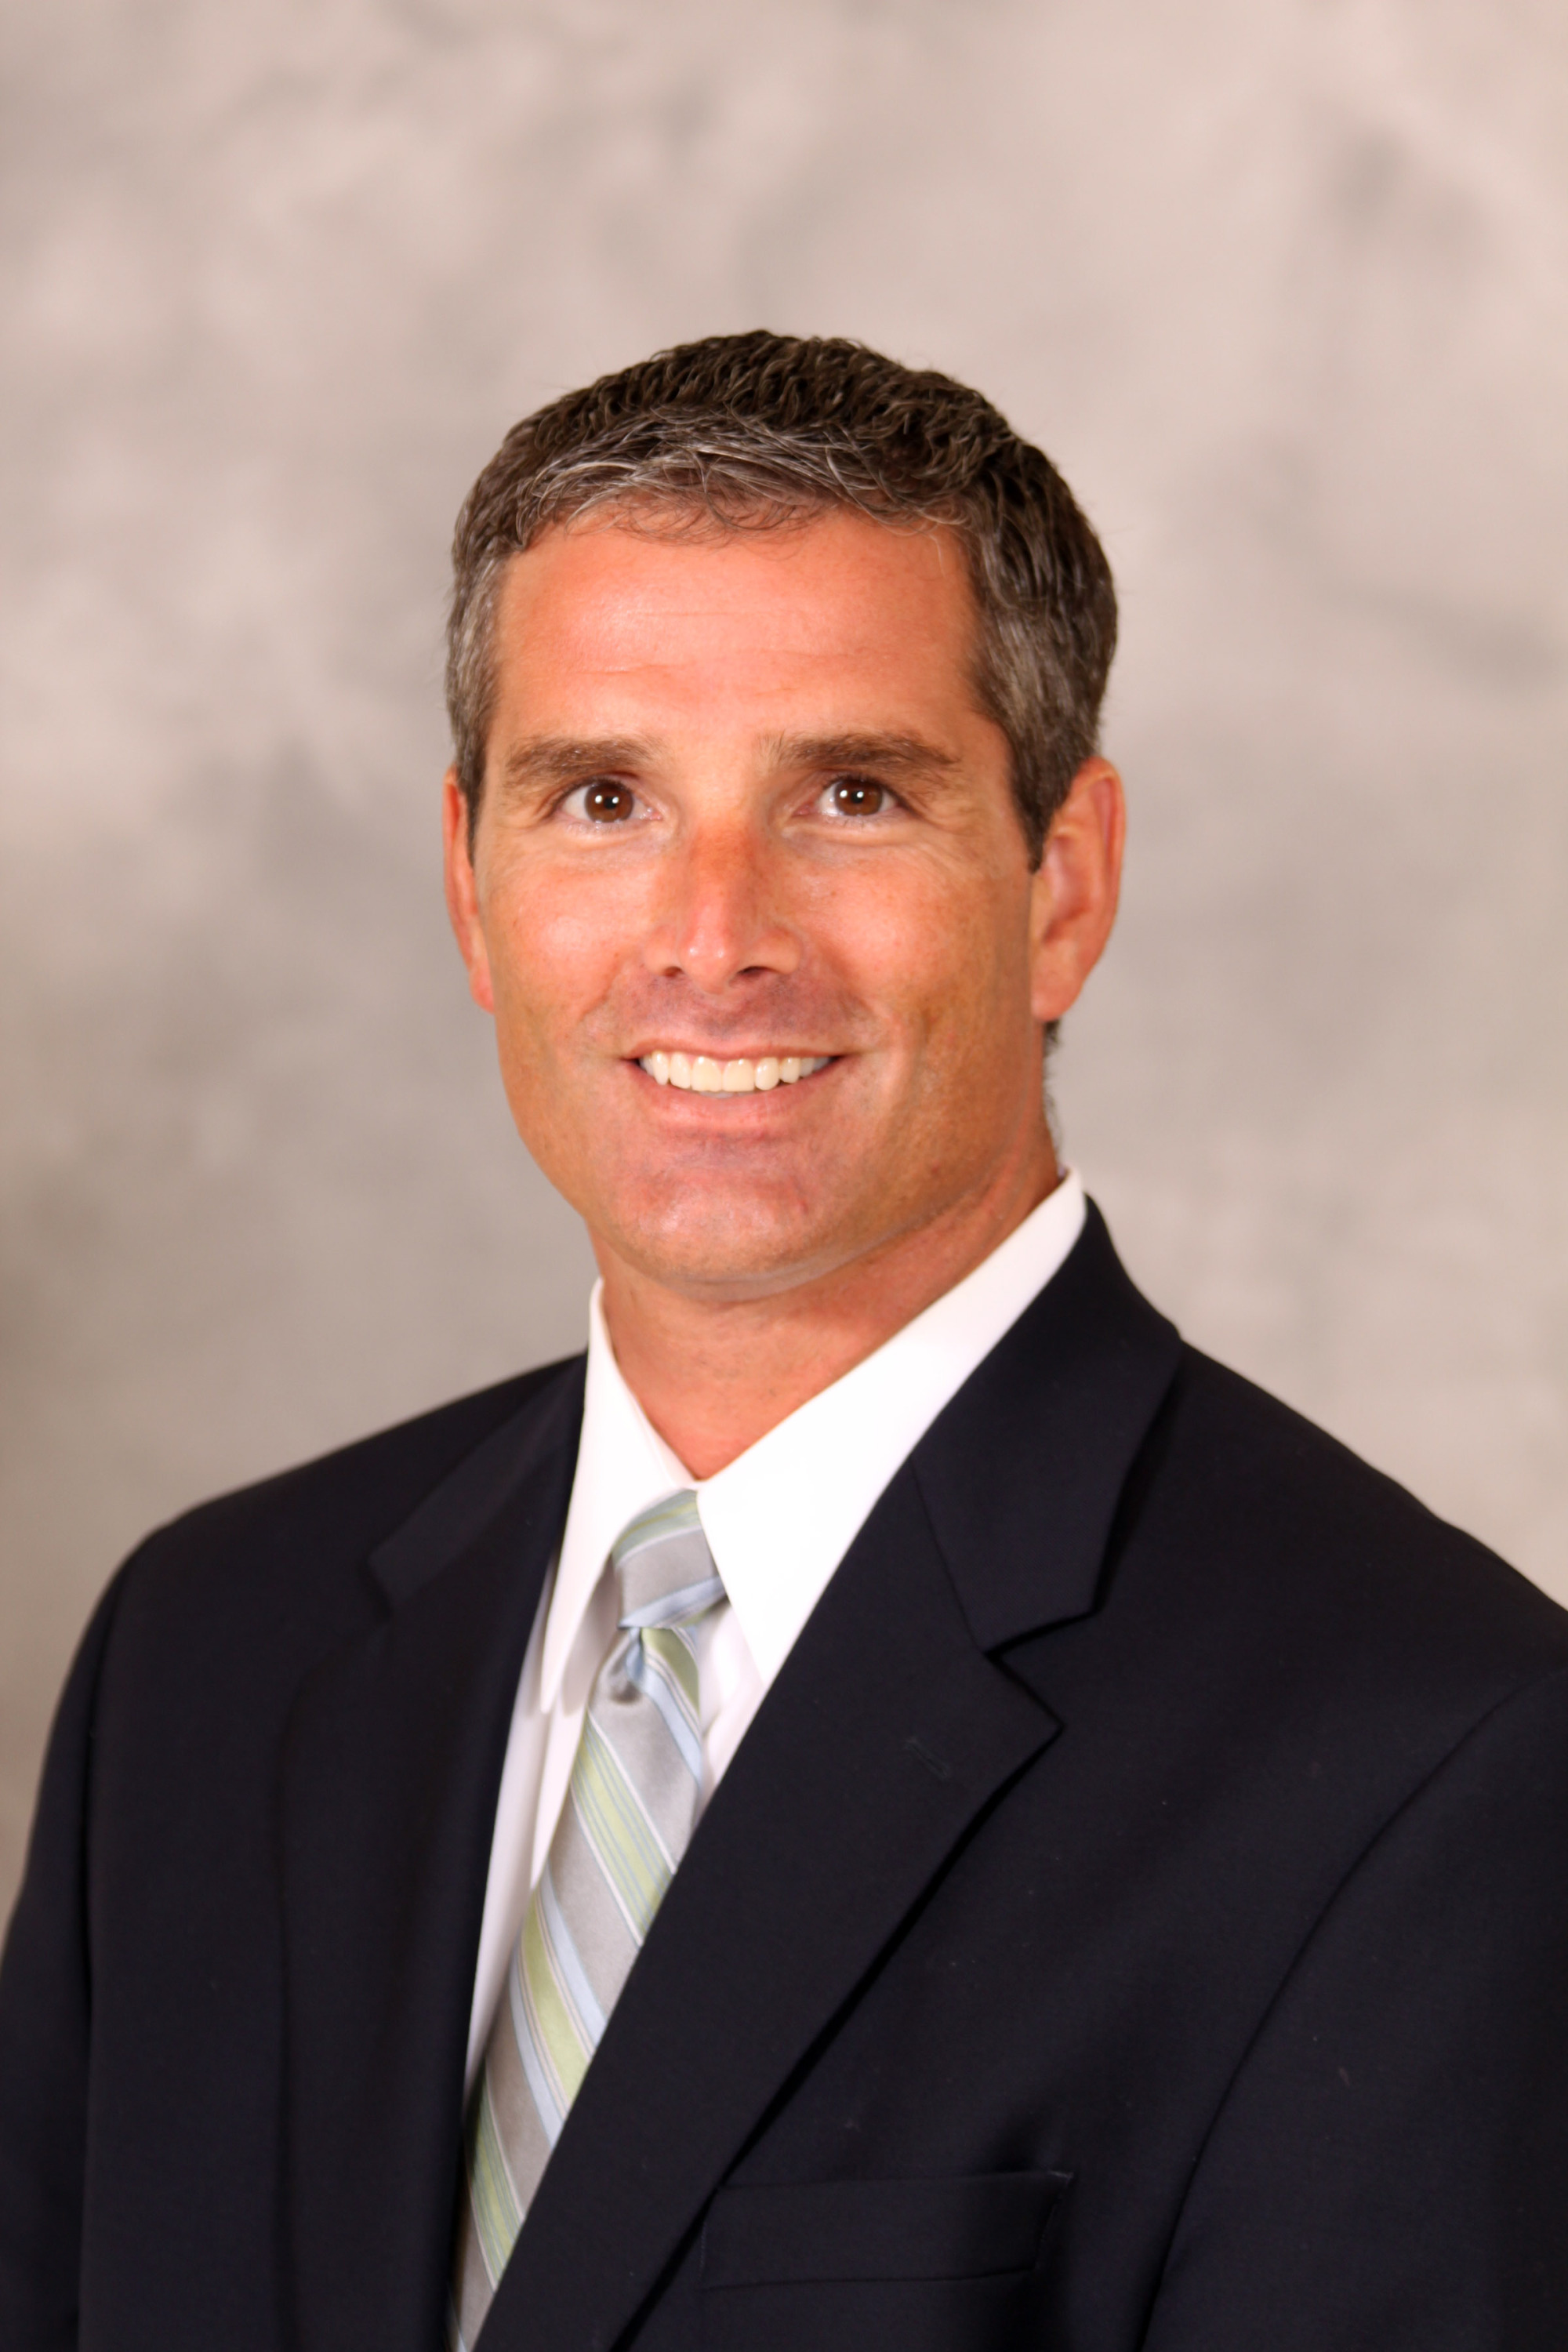 Mike Buddie Named Athletic Director at Furman - Wake Forest University